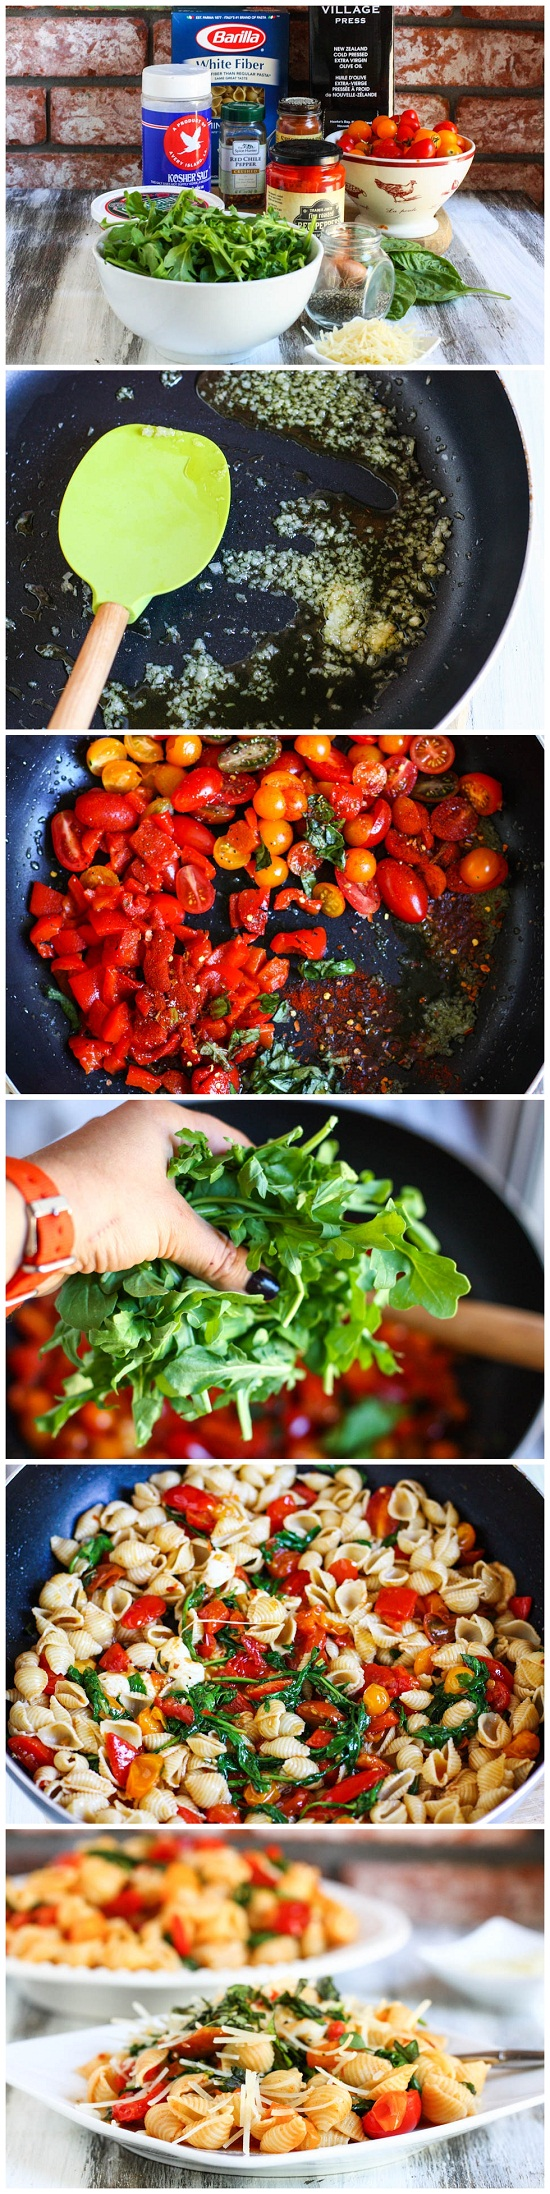 Smoky-Tomato-Roasted-Red-Pepper-Arugula-Pasta-Recipe